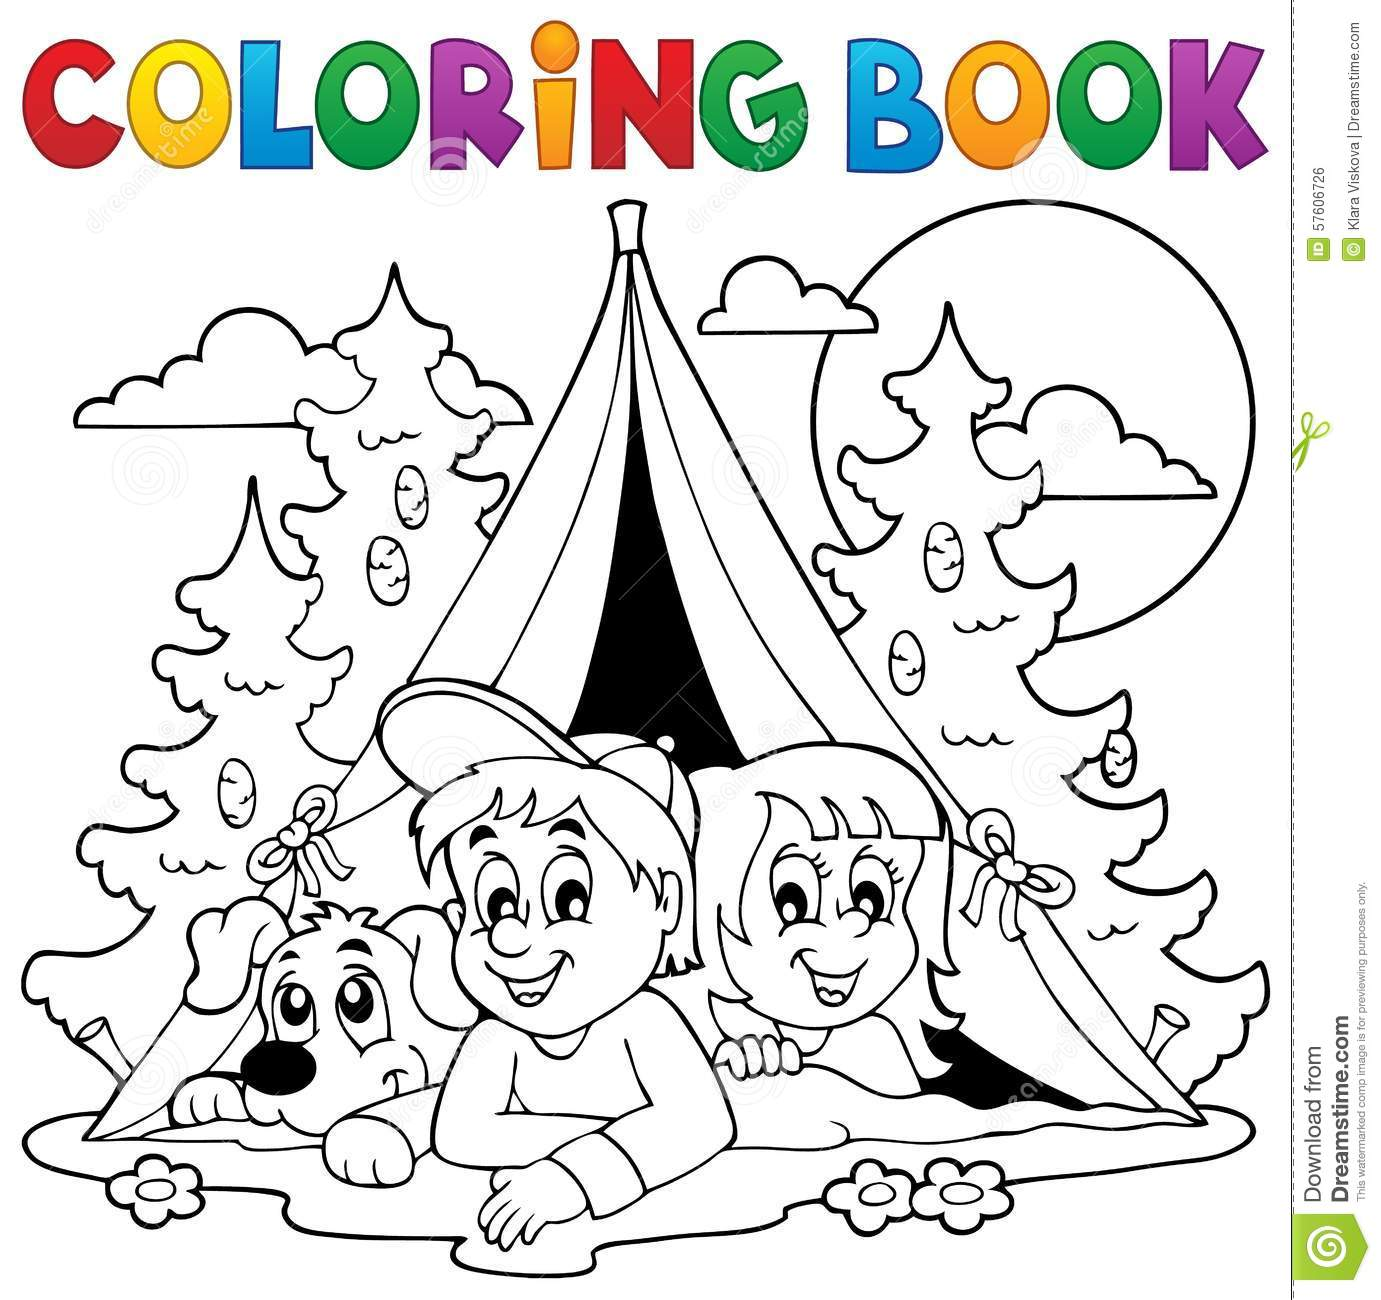 coloring book kids camping in forest stock vector image 57606726. Black Bedroom Furniture Sets. Home Design Ideas